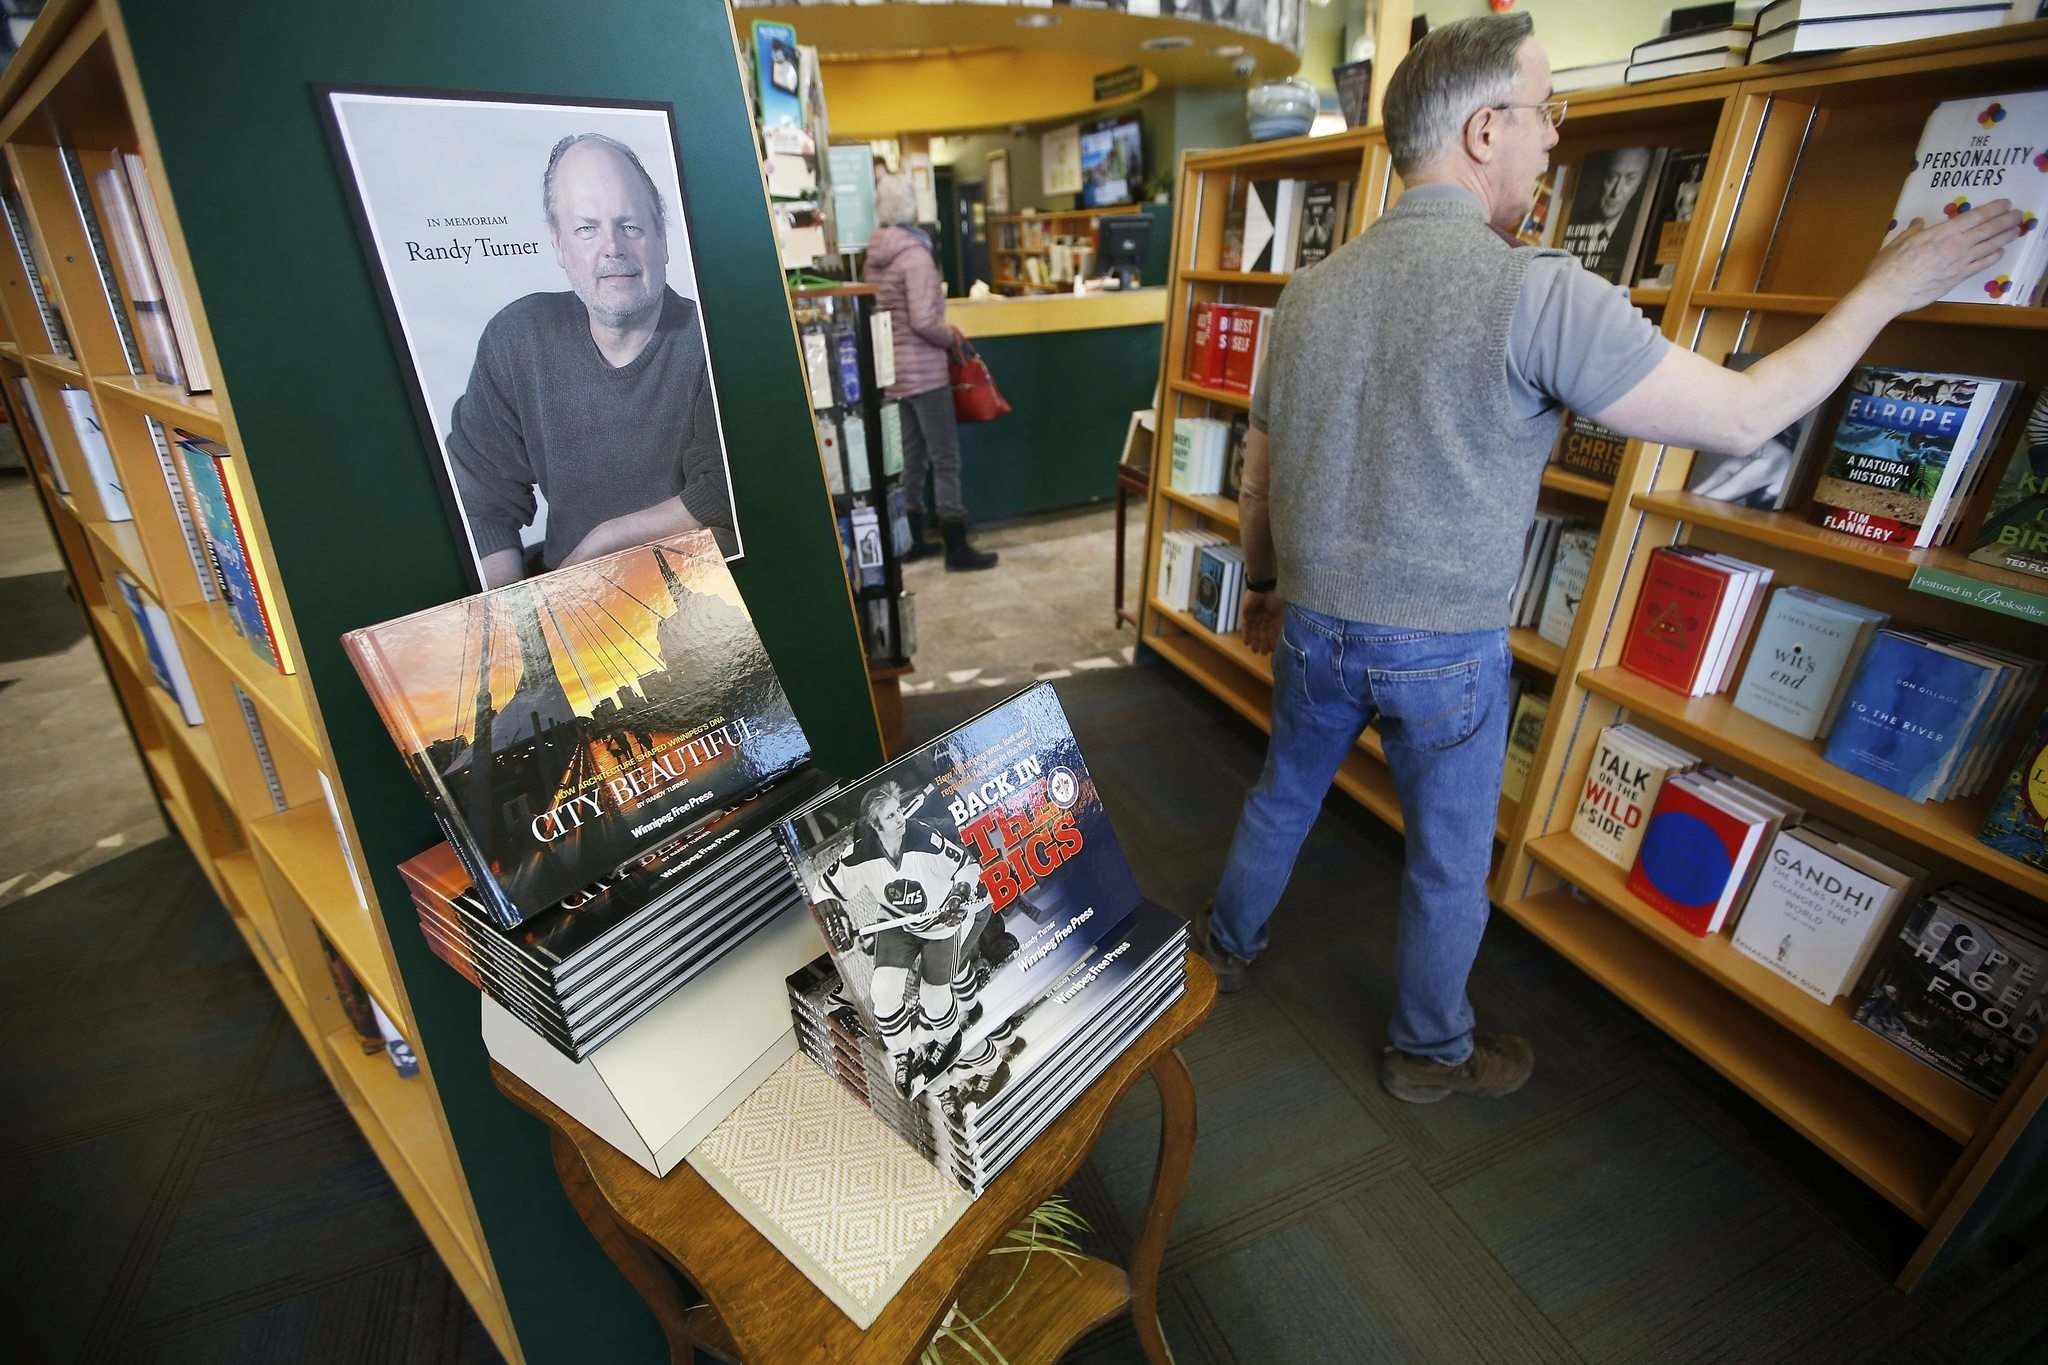 PHOTOS BY JOHN WOODS / WINNIPEG FREE PRESS</p><p>Free Press journalist Randy Turner's books are displayed at the McNally Robinson bookstore on Sunday. Turner, 57, died last Wednesday.</p></p>